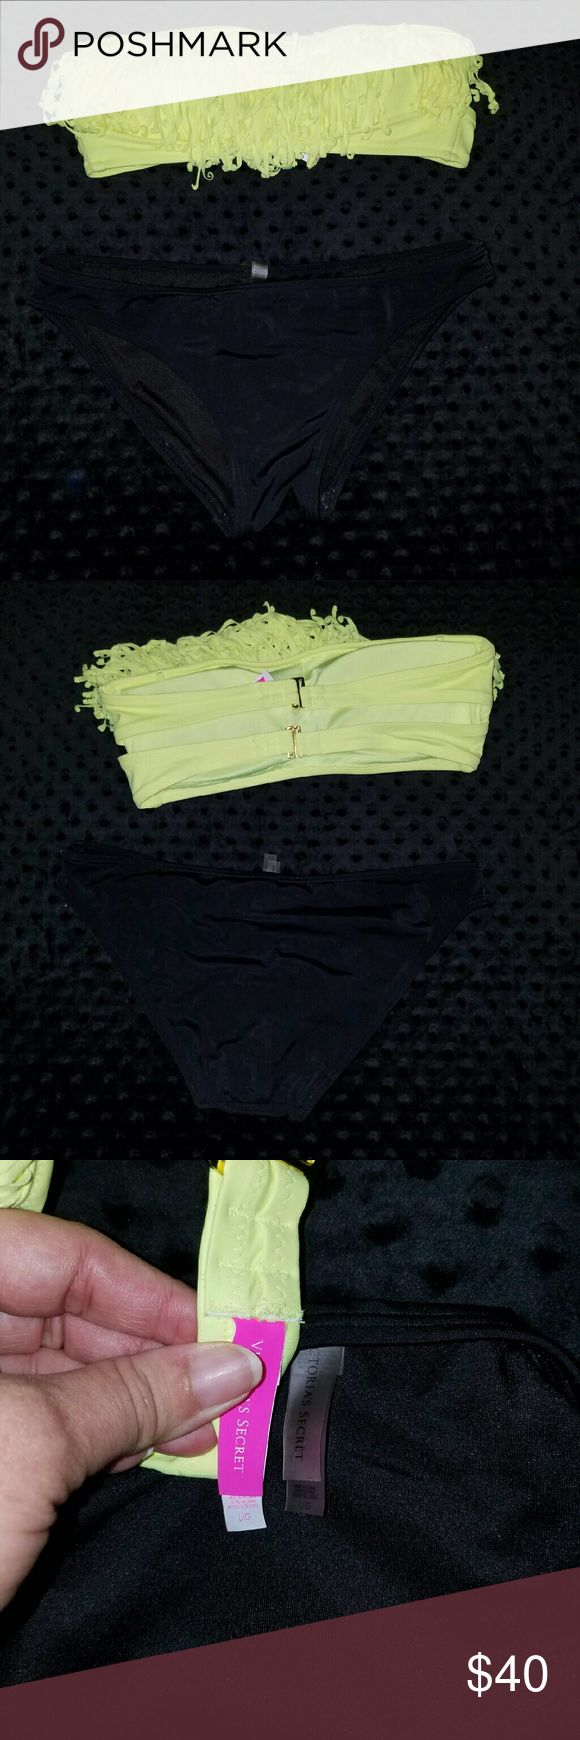 Victoria secret bikini Neon yellow bandeau top and black bottom, worn twice bottom has some piling seen in photo. Neck ties missing Victoria's Secret Swim Bikinis